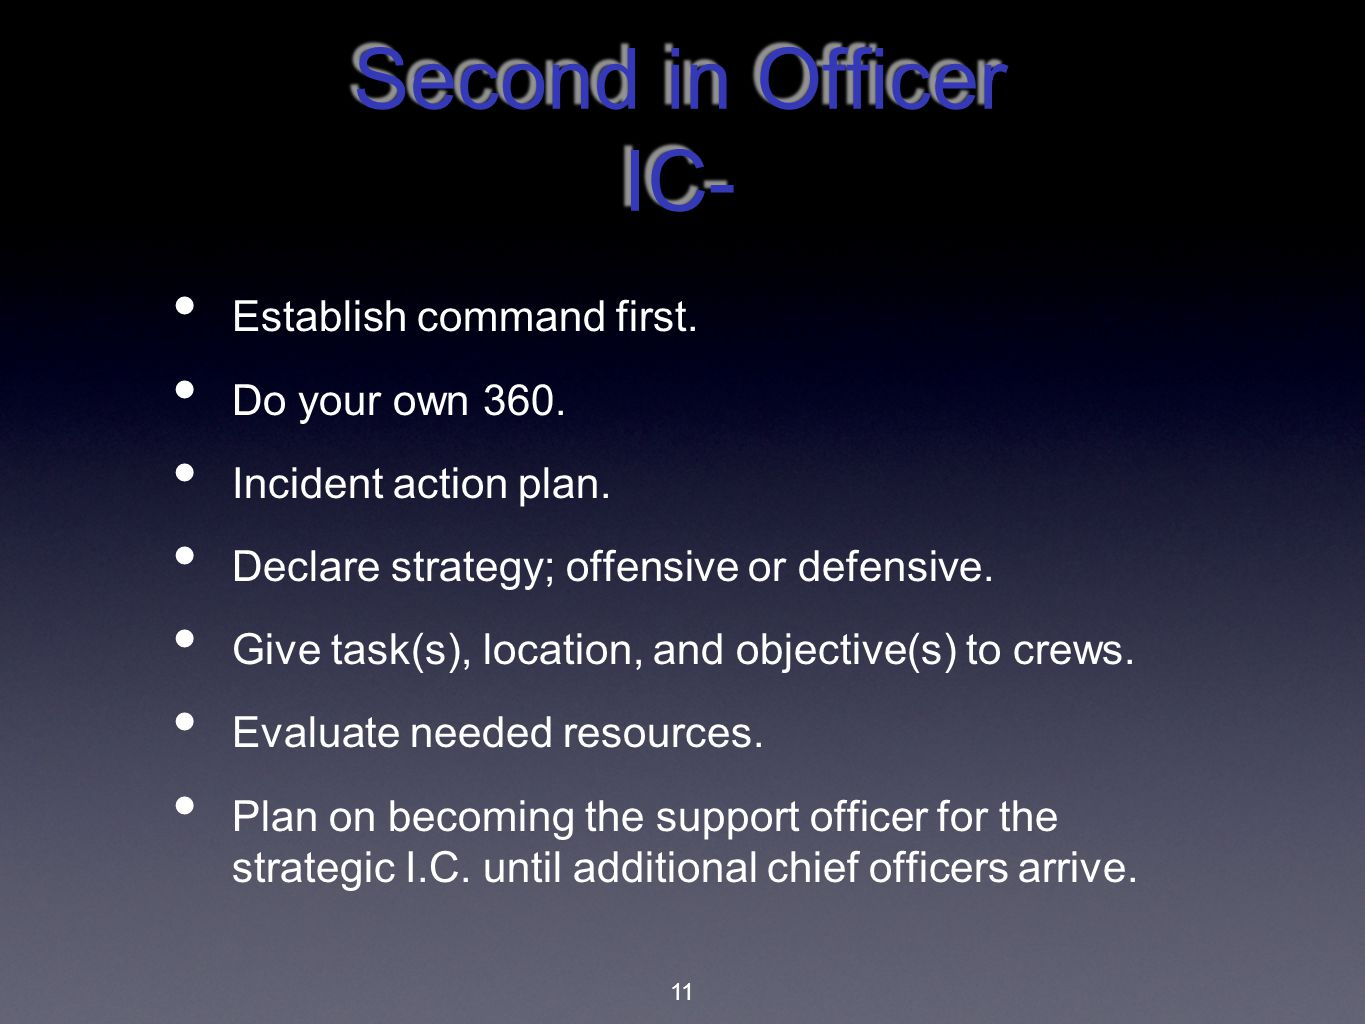 Second in Officer IC- Establish command first. Do your own 360.